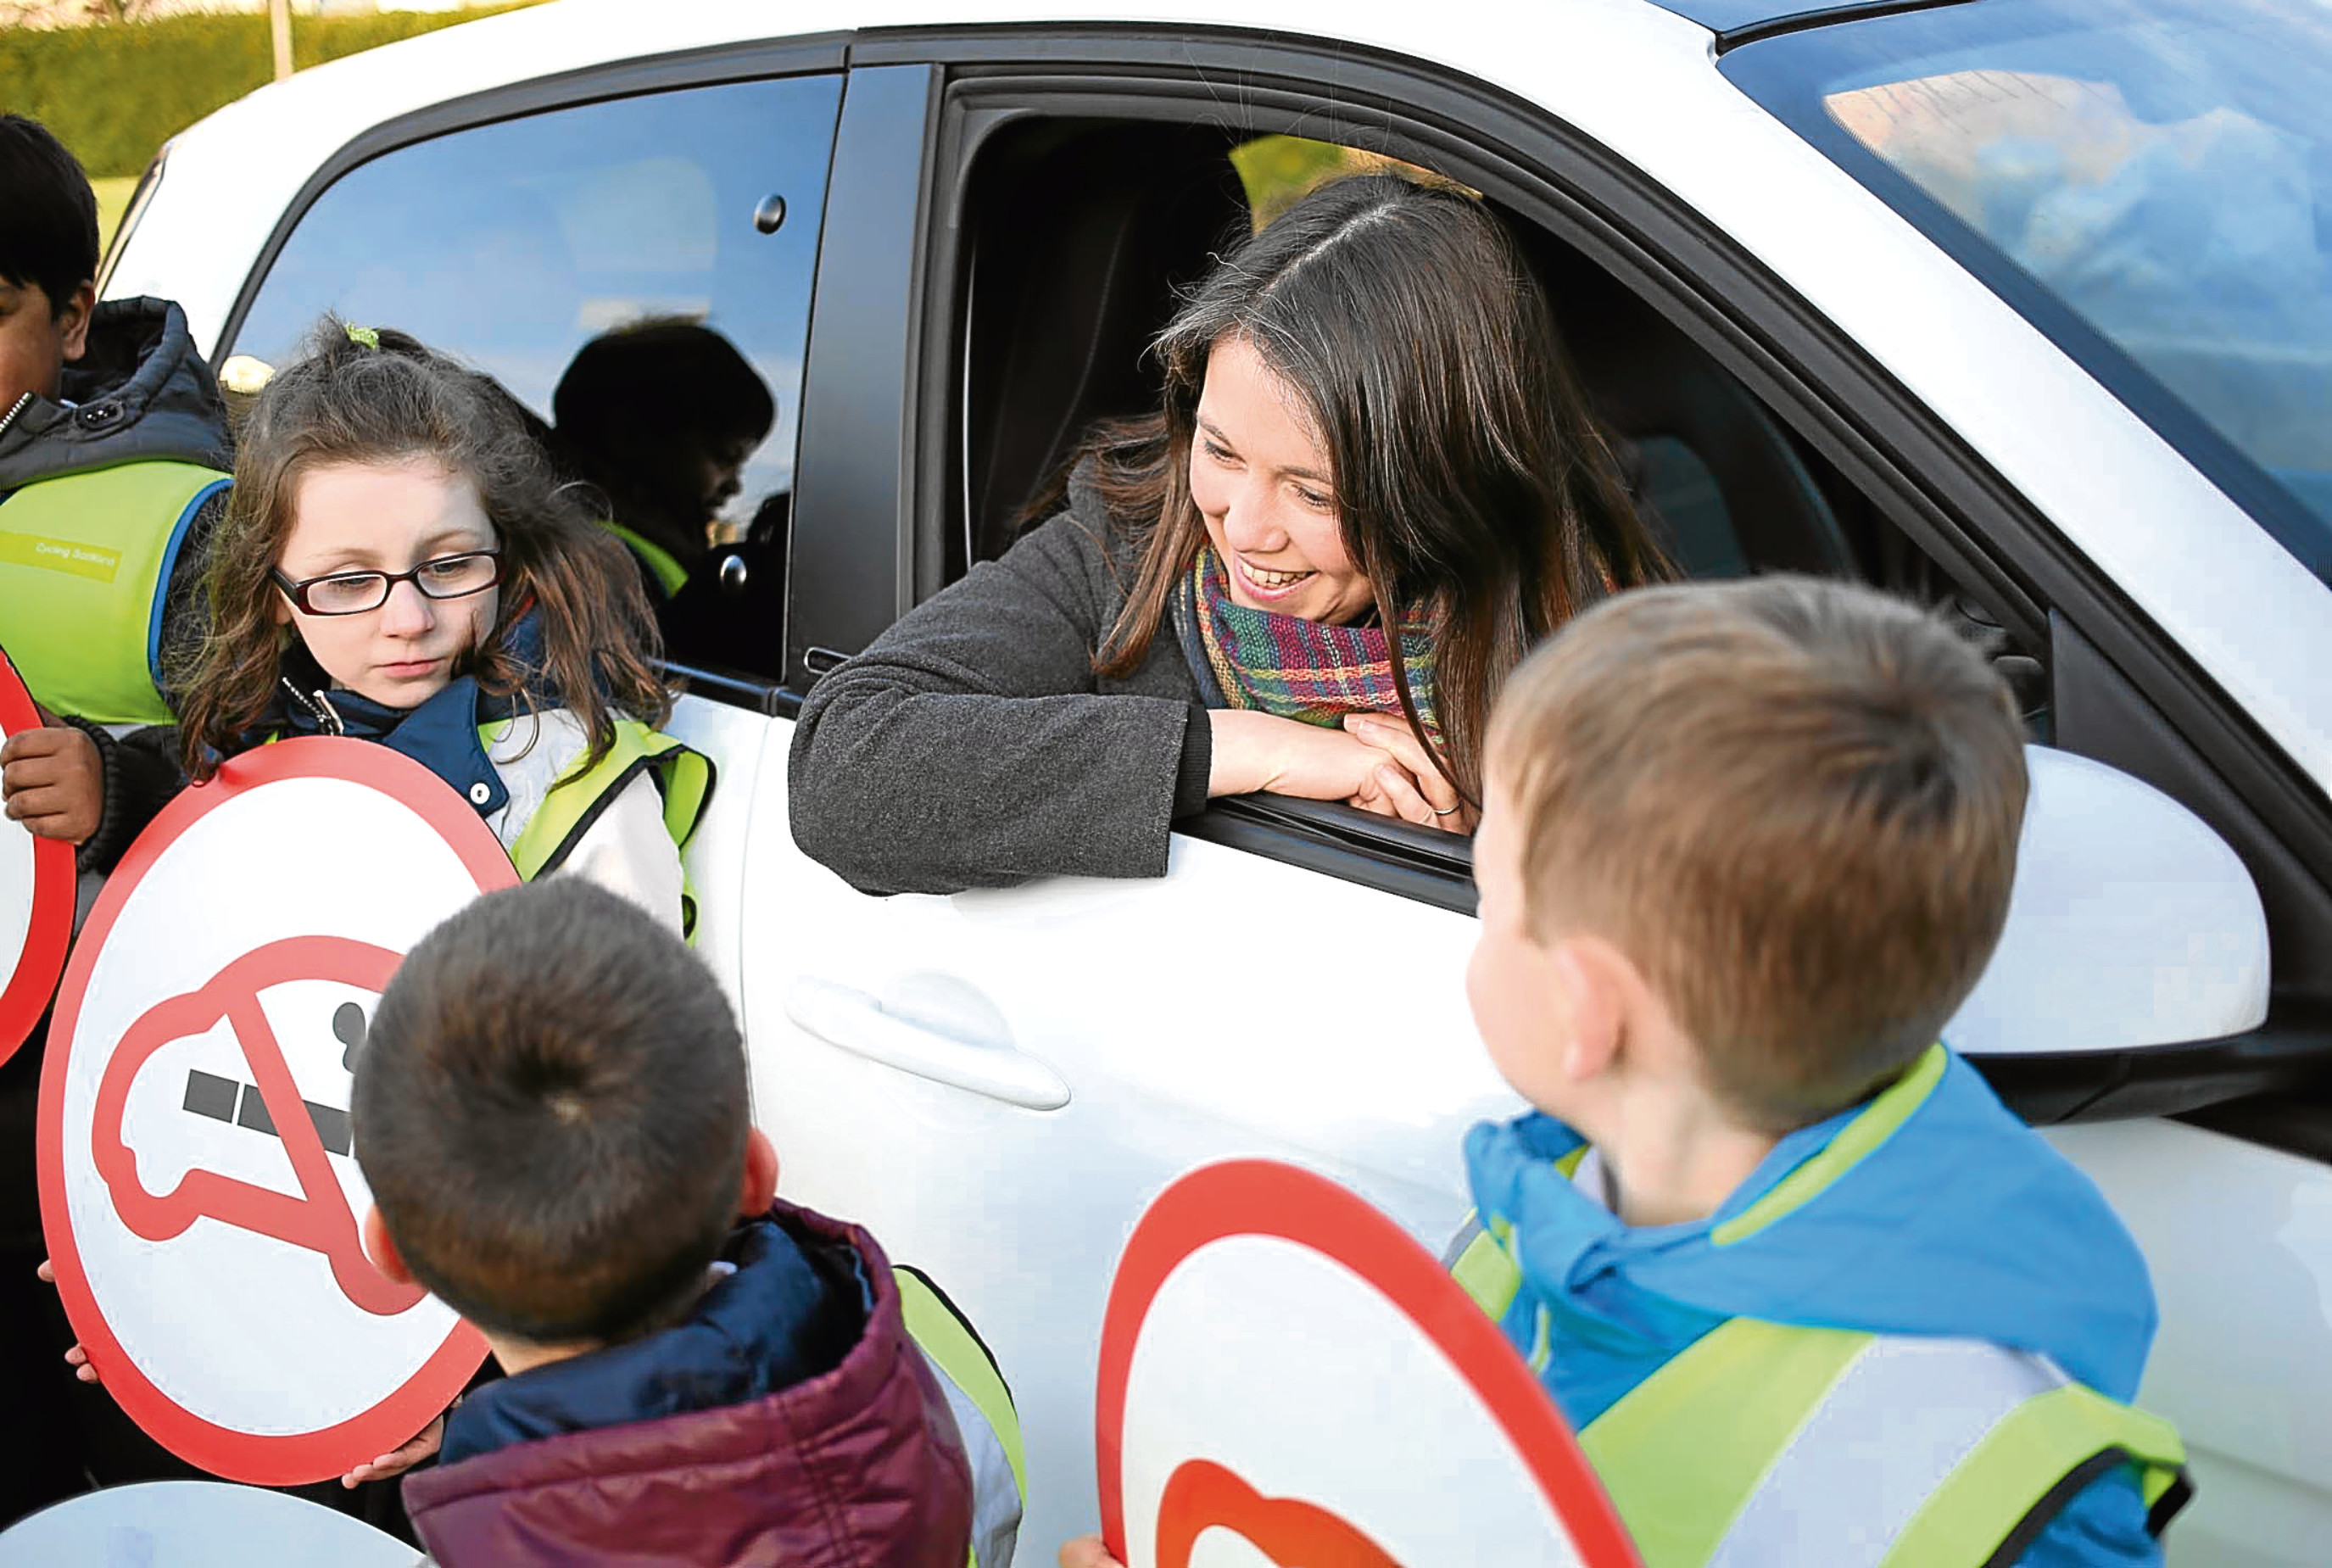 Aileen Campbell, Minister for Public Health and Sport, and some pupils from Edinburgh marked the day smoking in cars with children became illegal across Scotland. Picture: Allan Milligan.